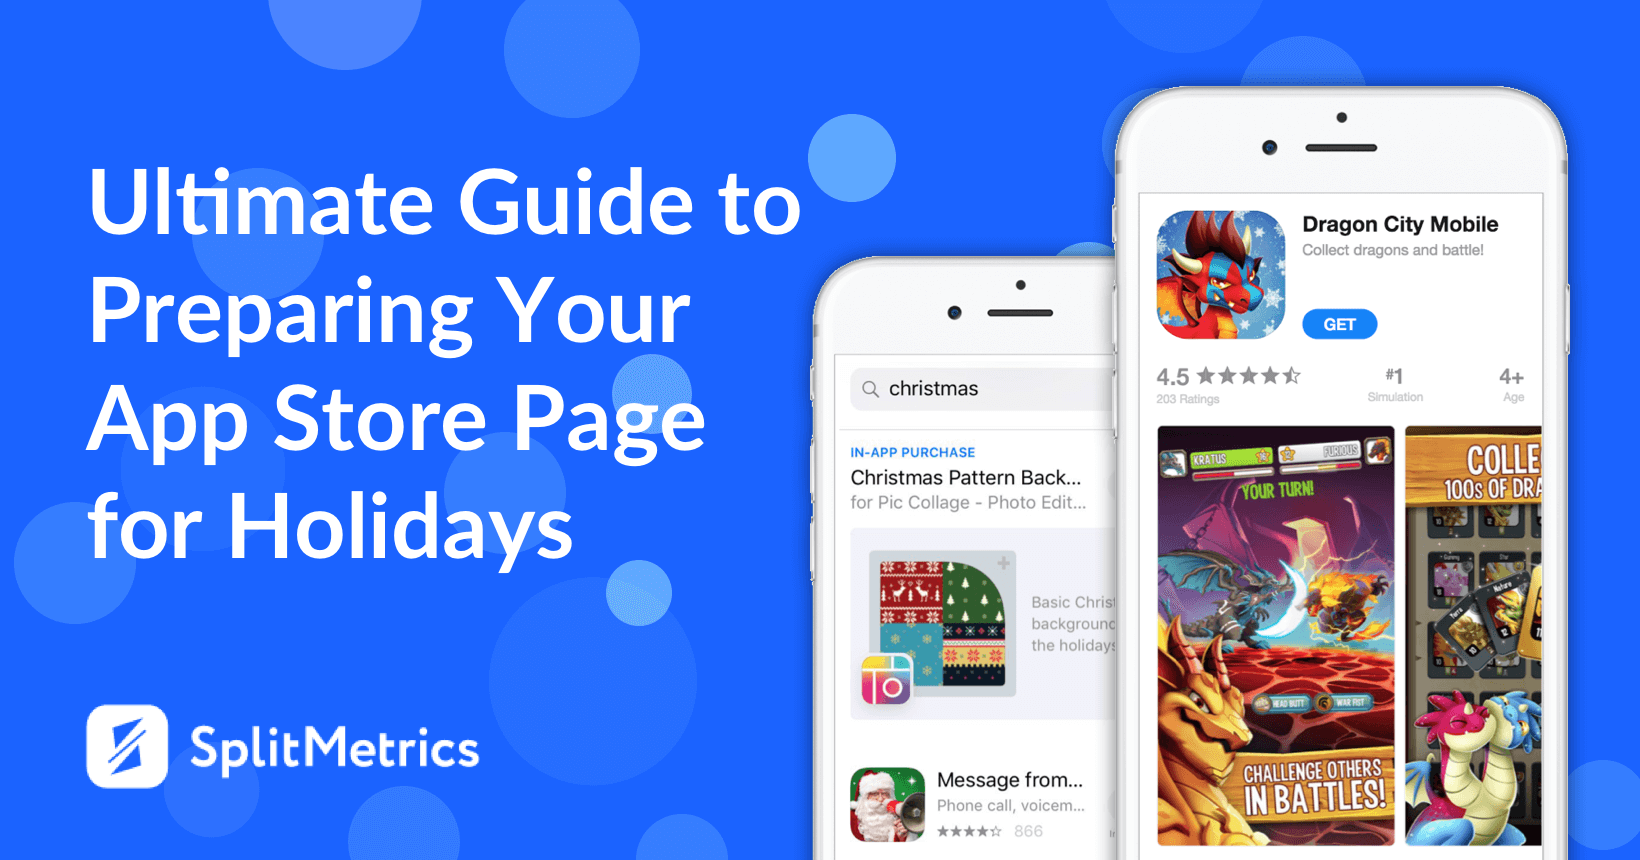 splitmetrics holiday app store page